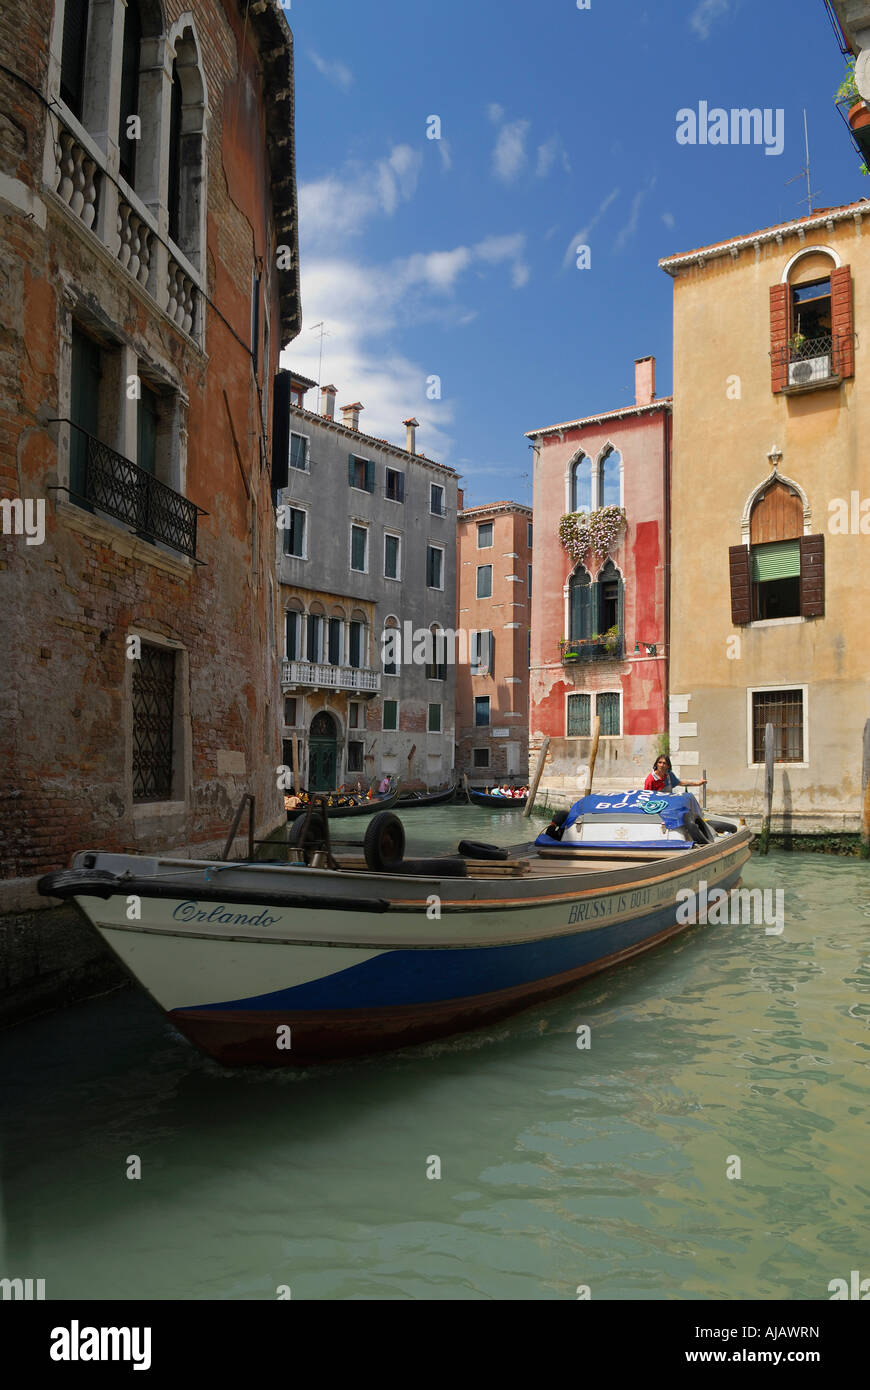 Riverboat plying the narrow waters of a canal in Venice - Stock Image